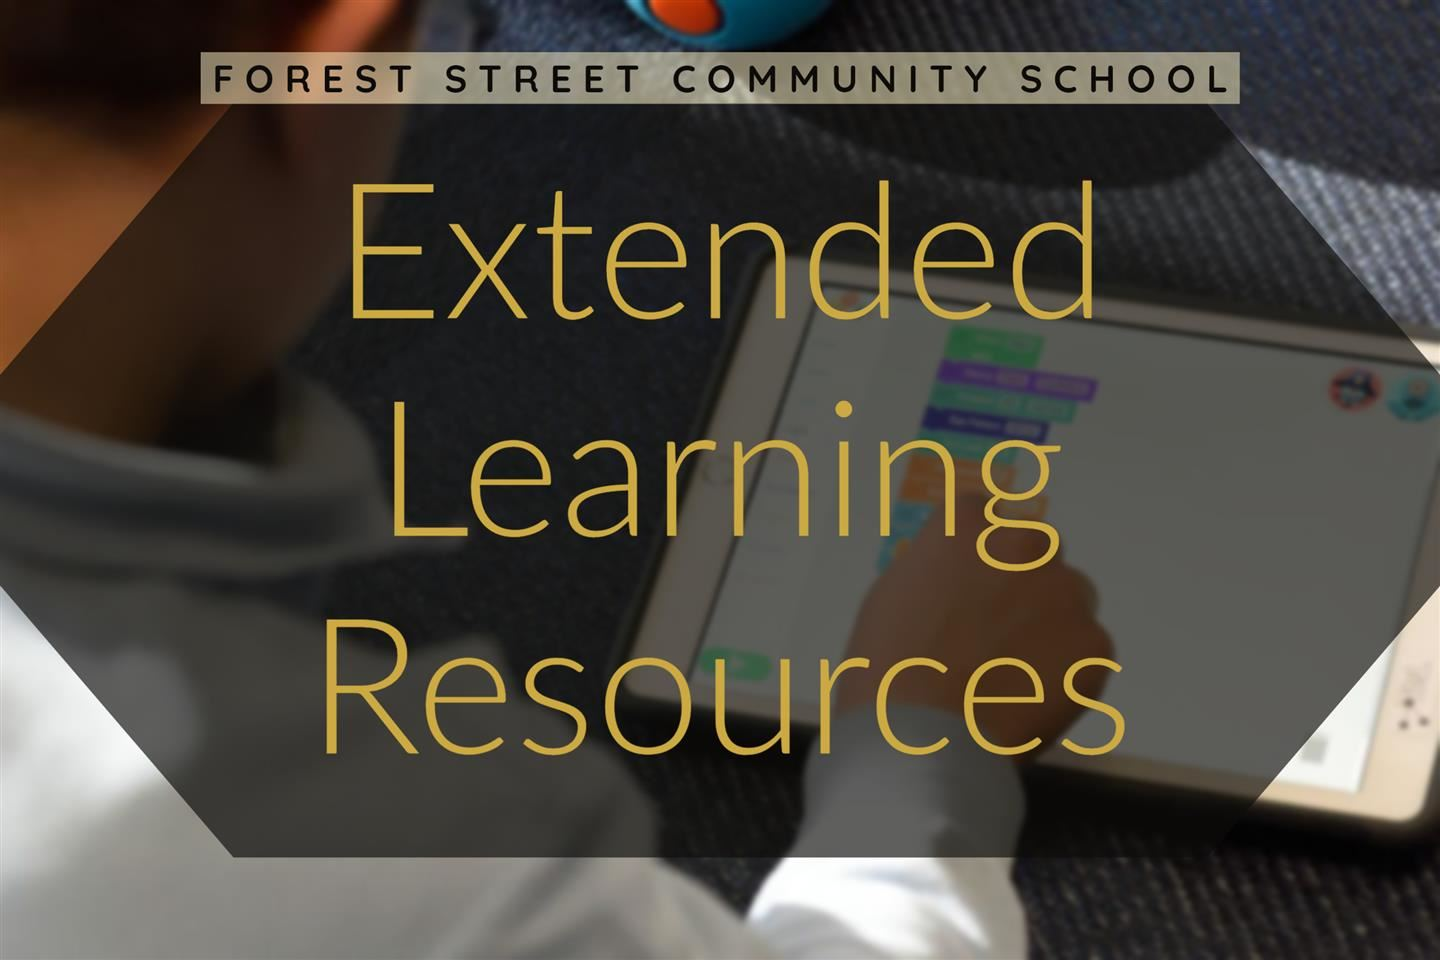 Extended Learning Resources for Parents